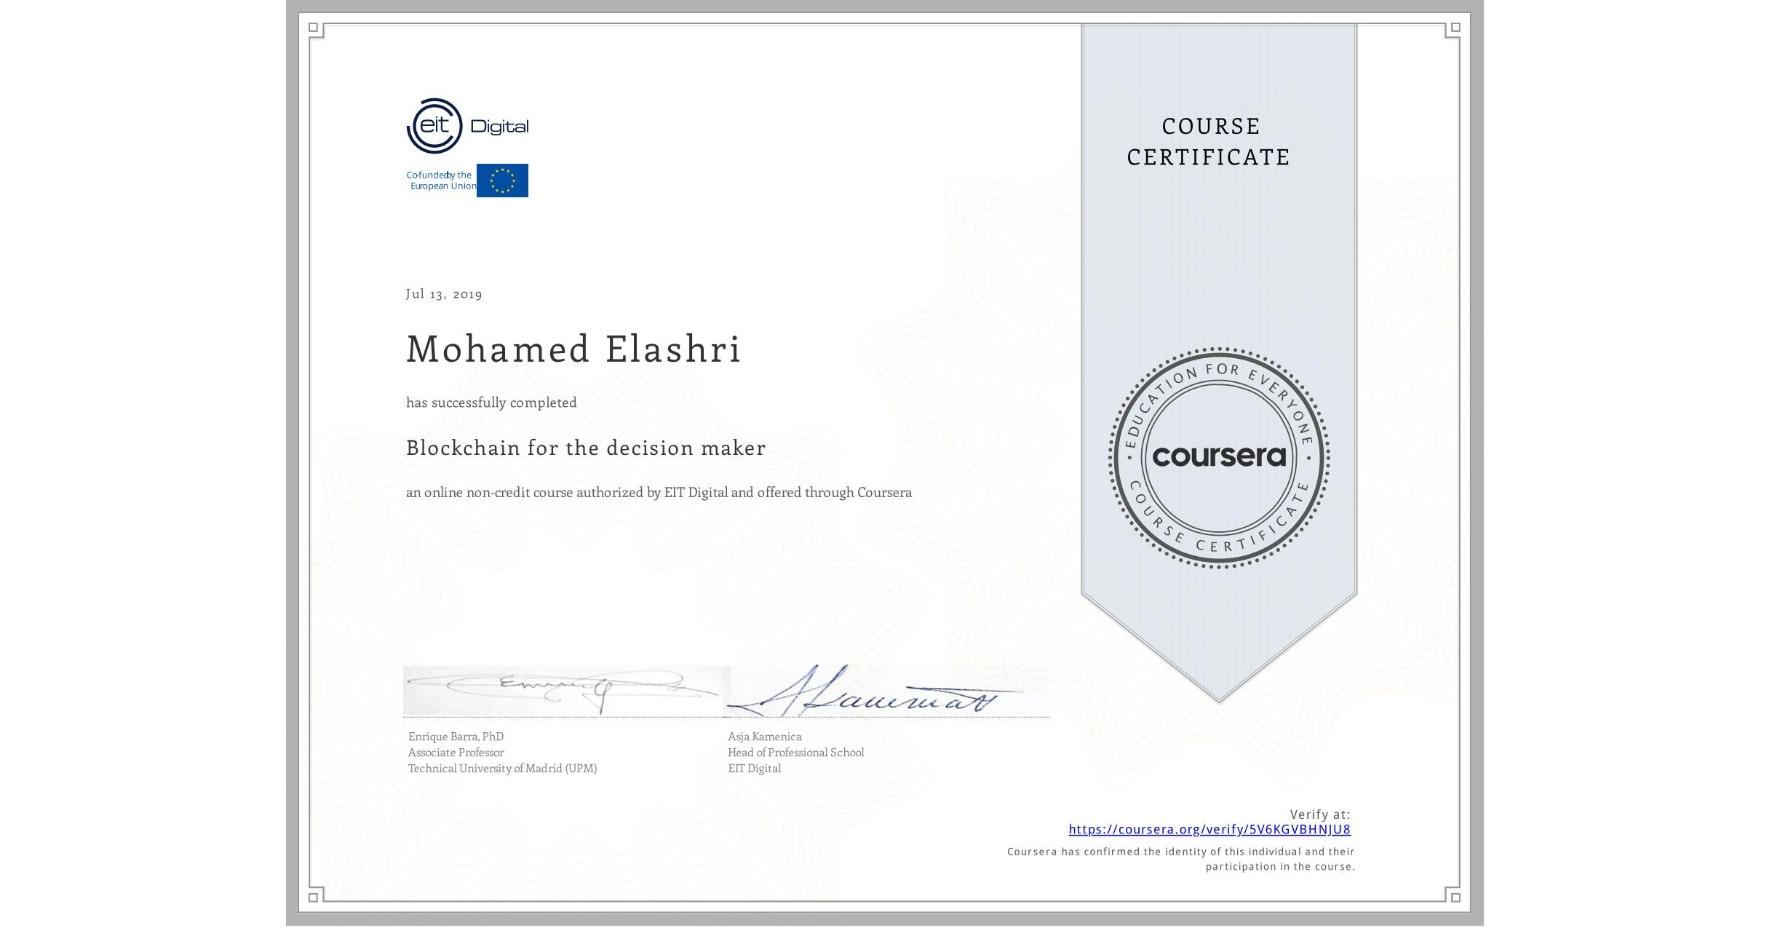 View certificate for Mohamed Elashri, Blockchain for the decision maker, an online non-credit course authorized by EIT Digital  and offered through Coursera